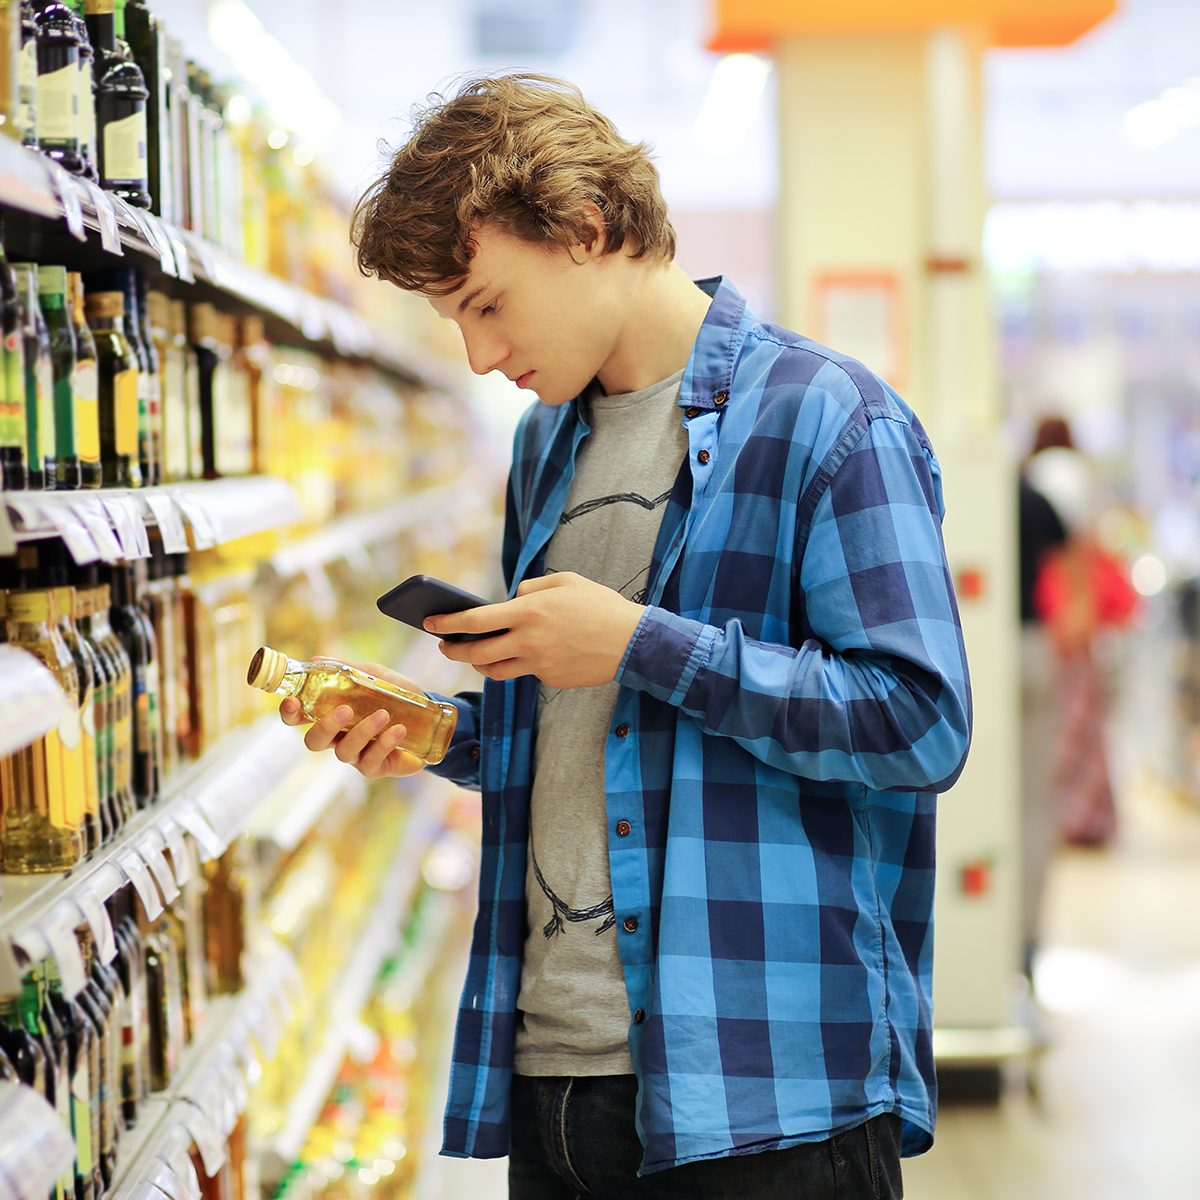 Man shopping in supermarket, reading product information